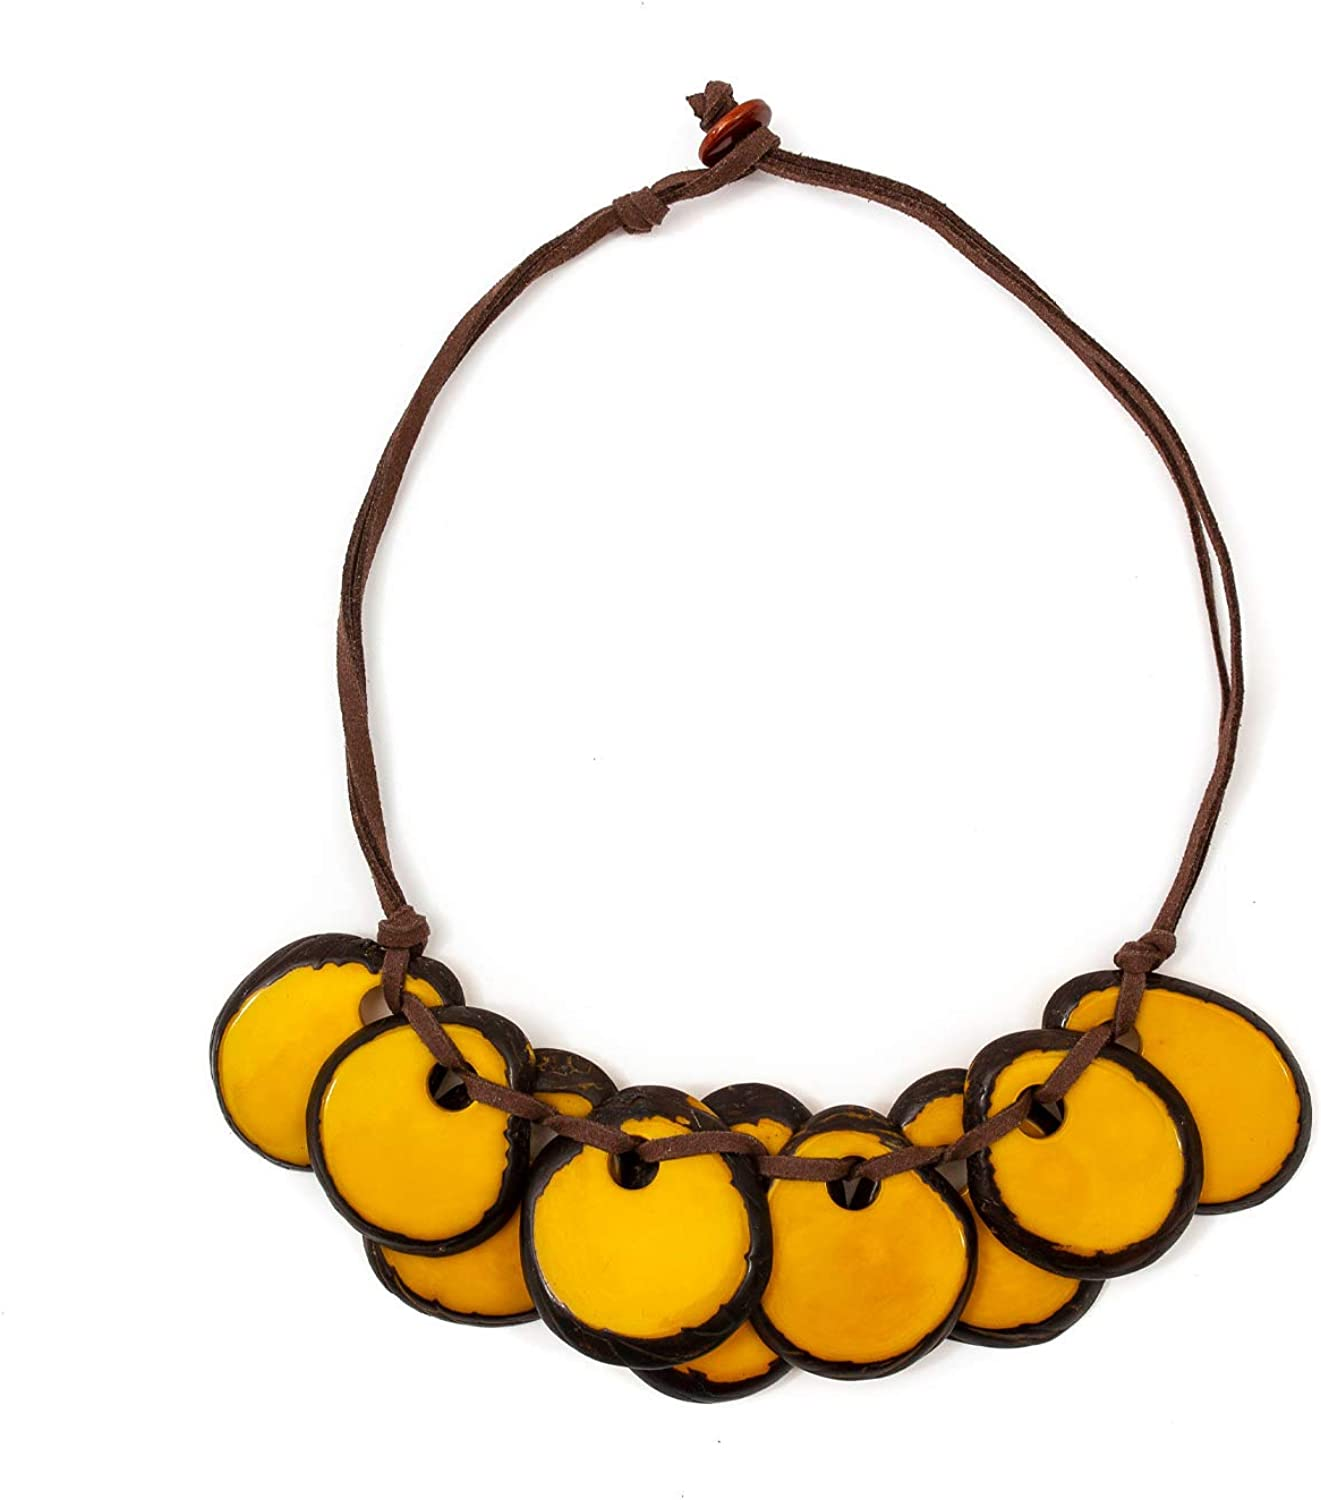 Tagua Luchie Fashion Necklace Tagua Nut Ethical Bead Slow Fashion Beaded Wooden Eco Friendly Boho Unique Handmade Statement Jewelry